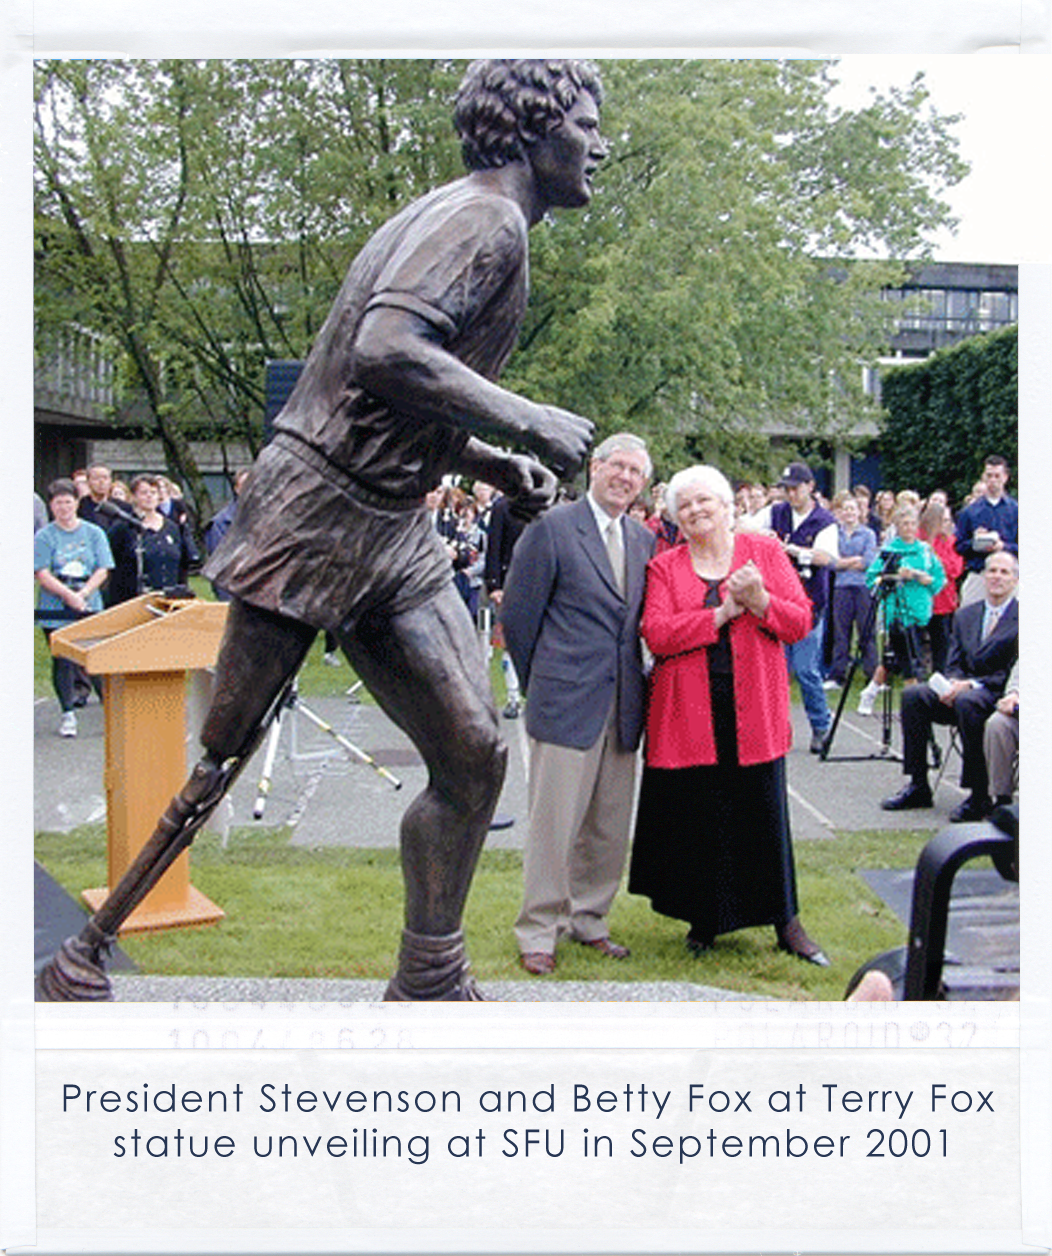 President Stevenson and Betty Fox at Terry Fox statue unveiling at SFU in September 2001